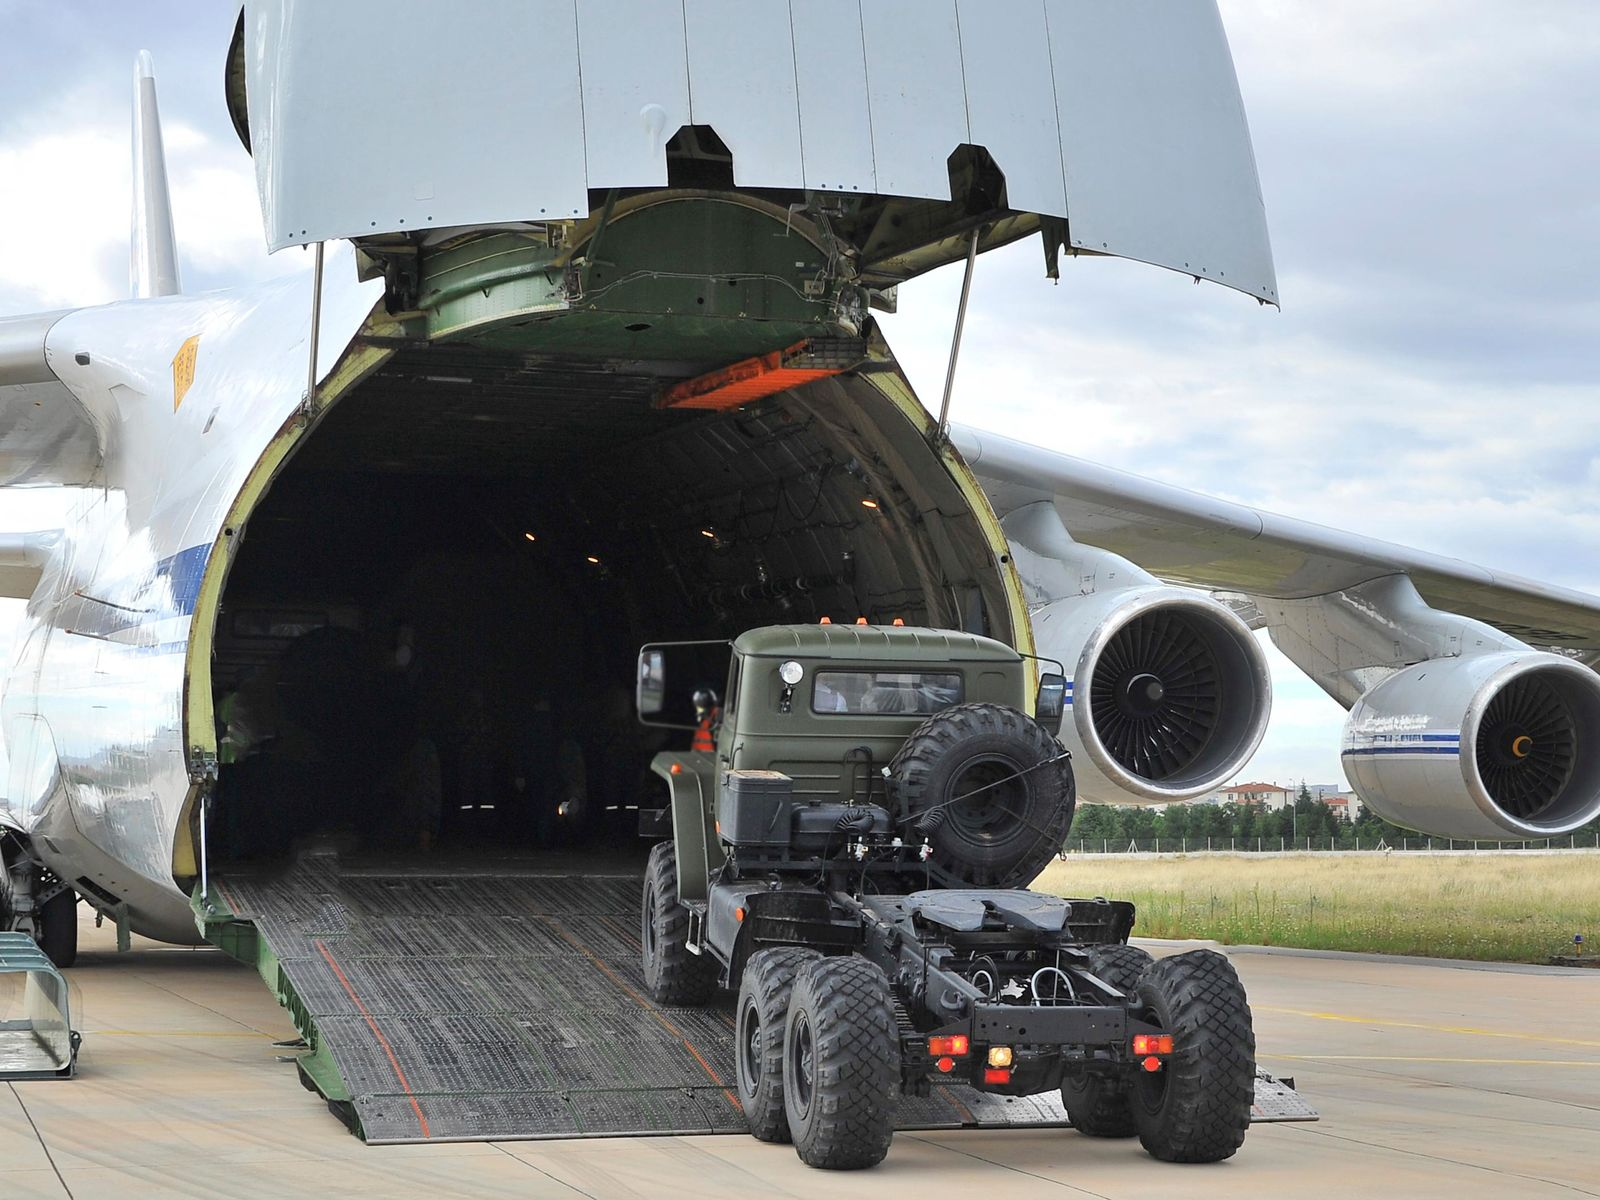 Military vehicles and equipment, parts of the S-400 air defense systems, are unloaded from a Russian transport aircraft, at Murted military airport in Ankara, Turkey, Friday, July 12, 2019.{ } (Turkish Defence Ministry via AP, Pool)